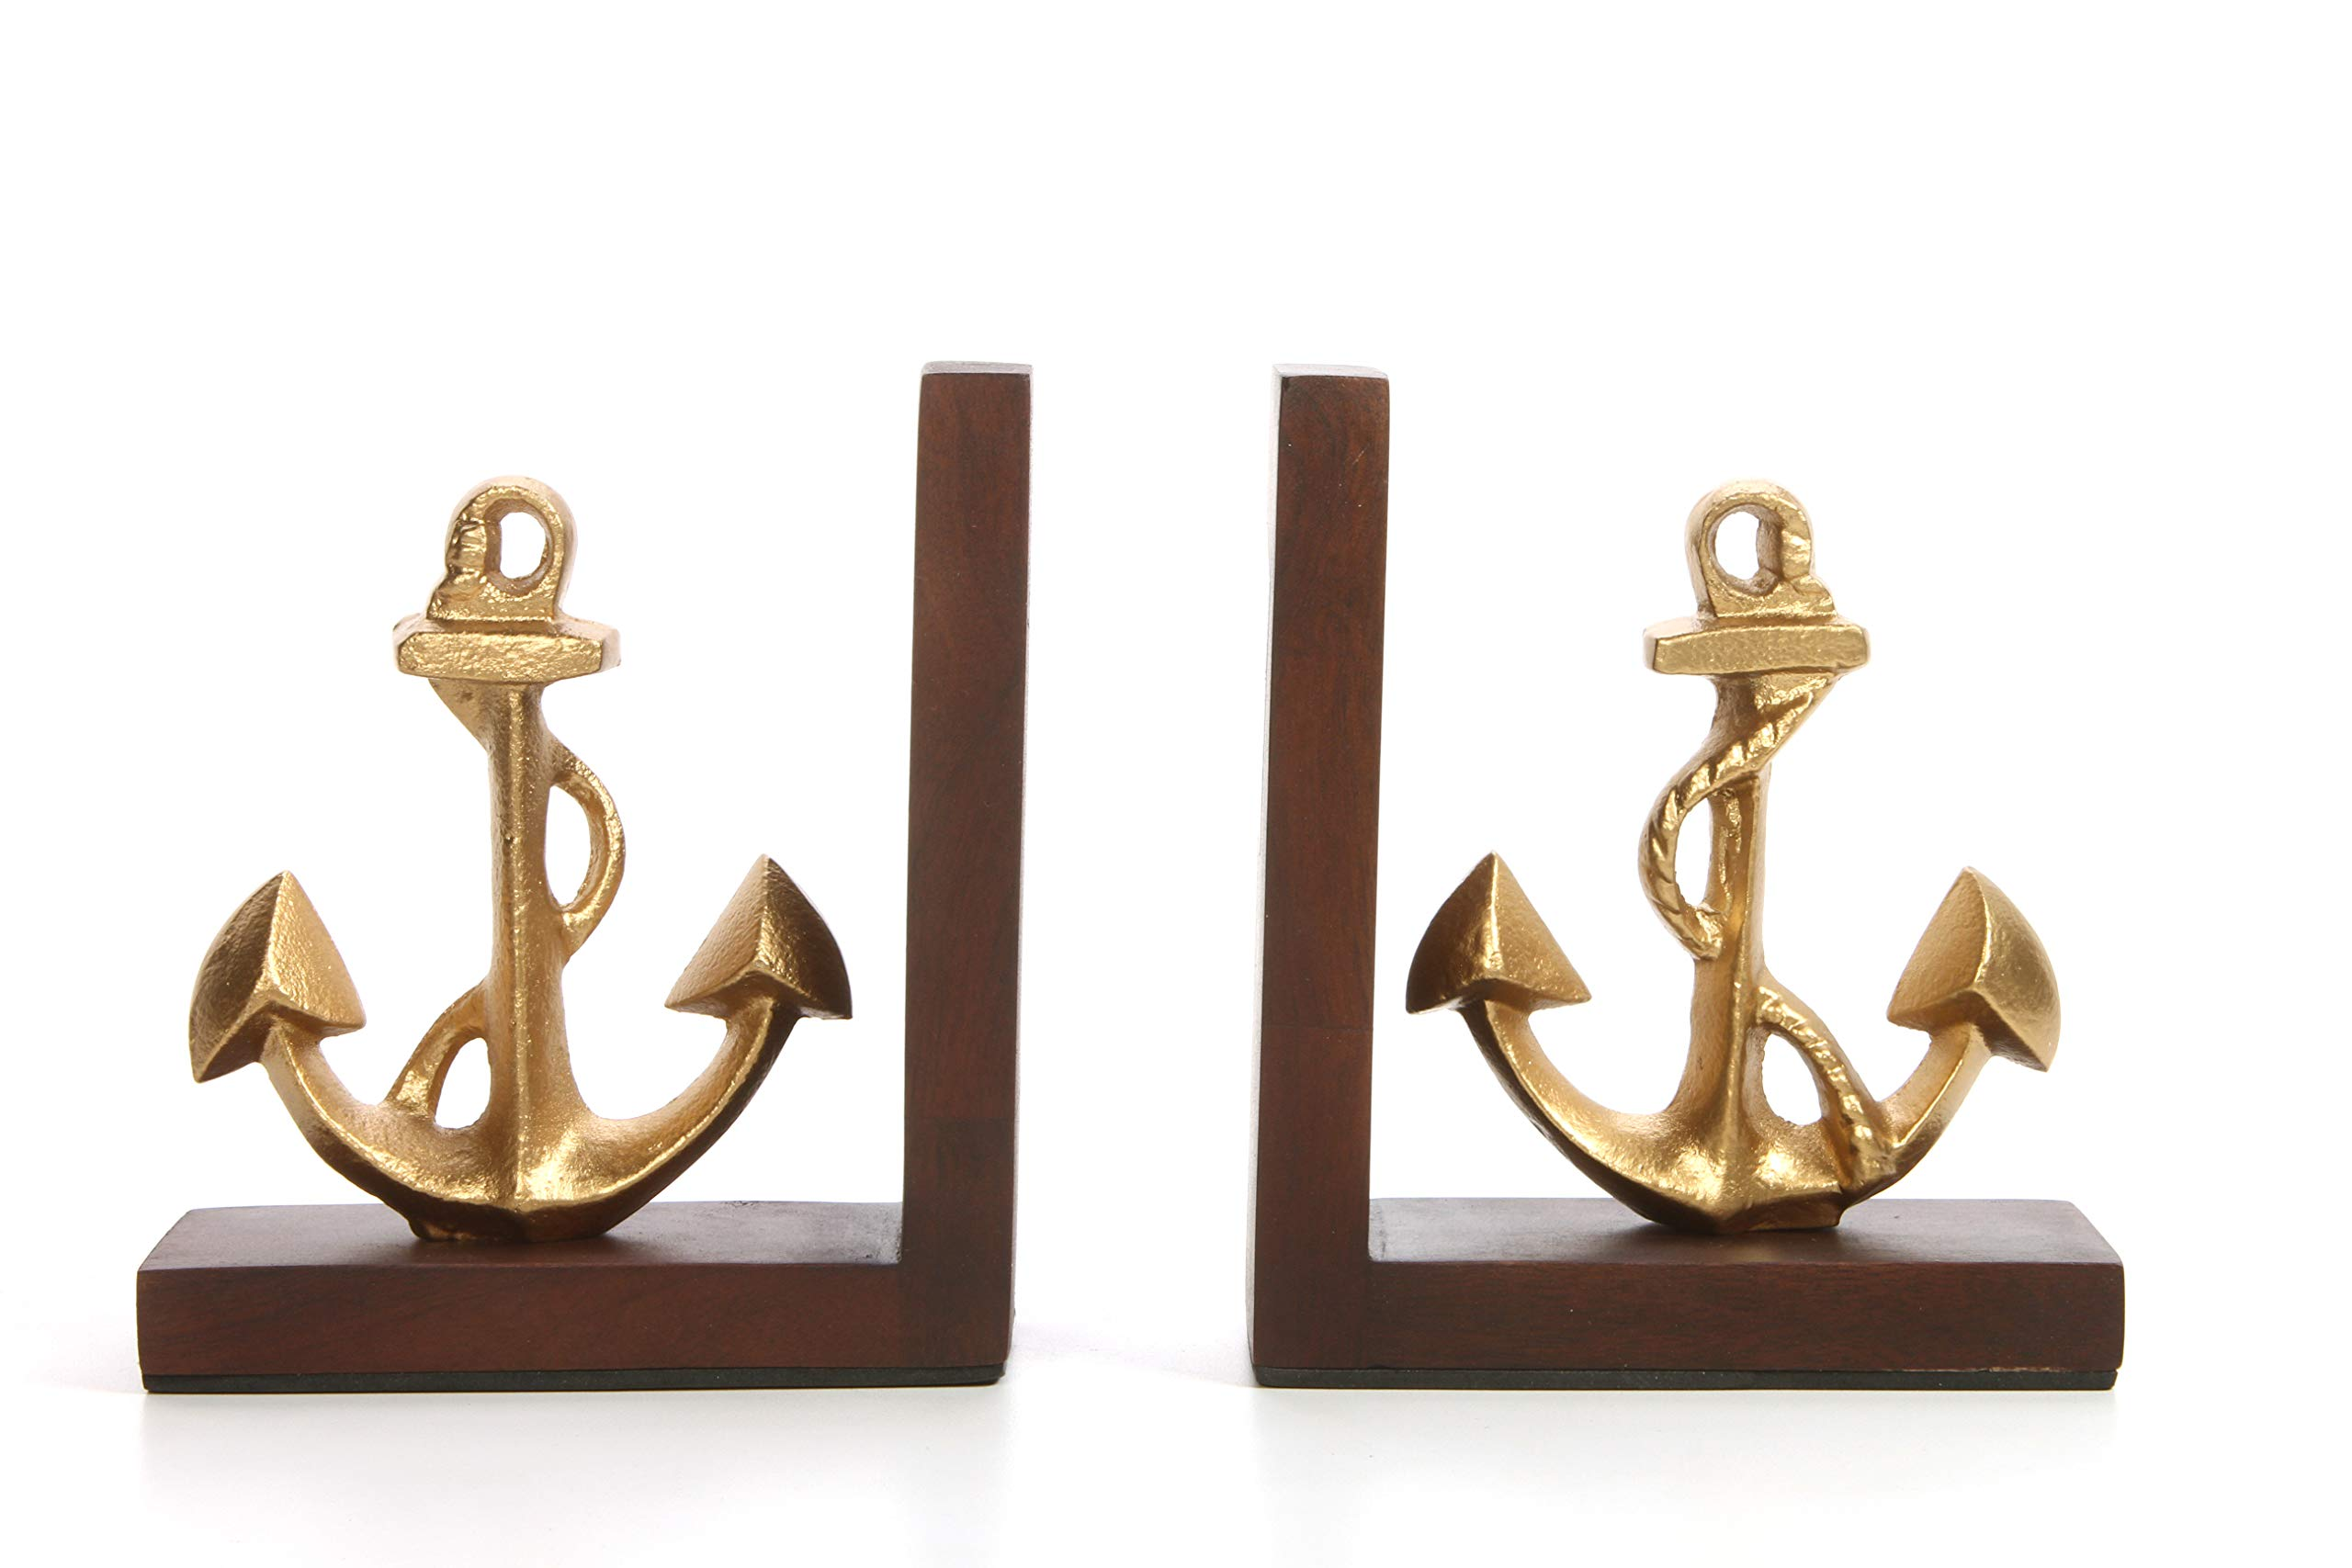 Hosley Decorative Tabletop Anchor Bookends- 6.50'' High. Ideal Nautical Gift for Wedding, Home, Party Favor, Spa, Reiki, Meditation, Bathroom Settings O9